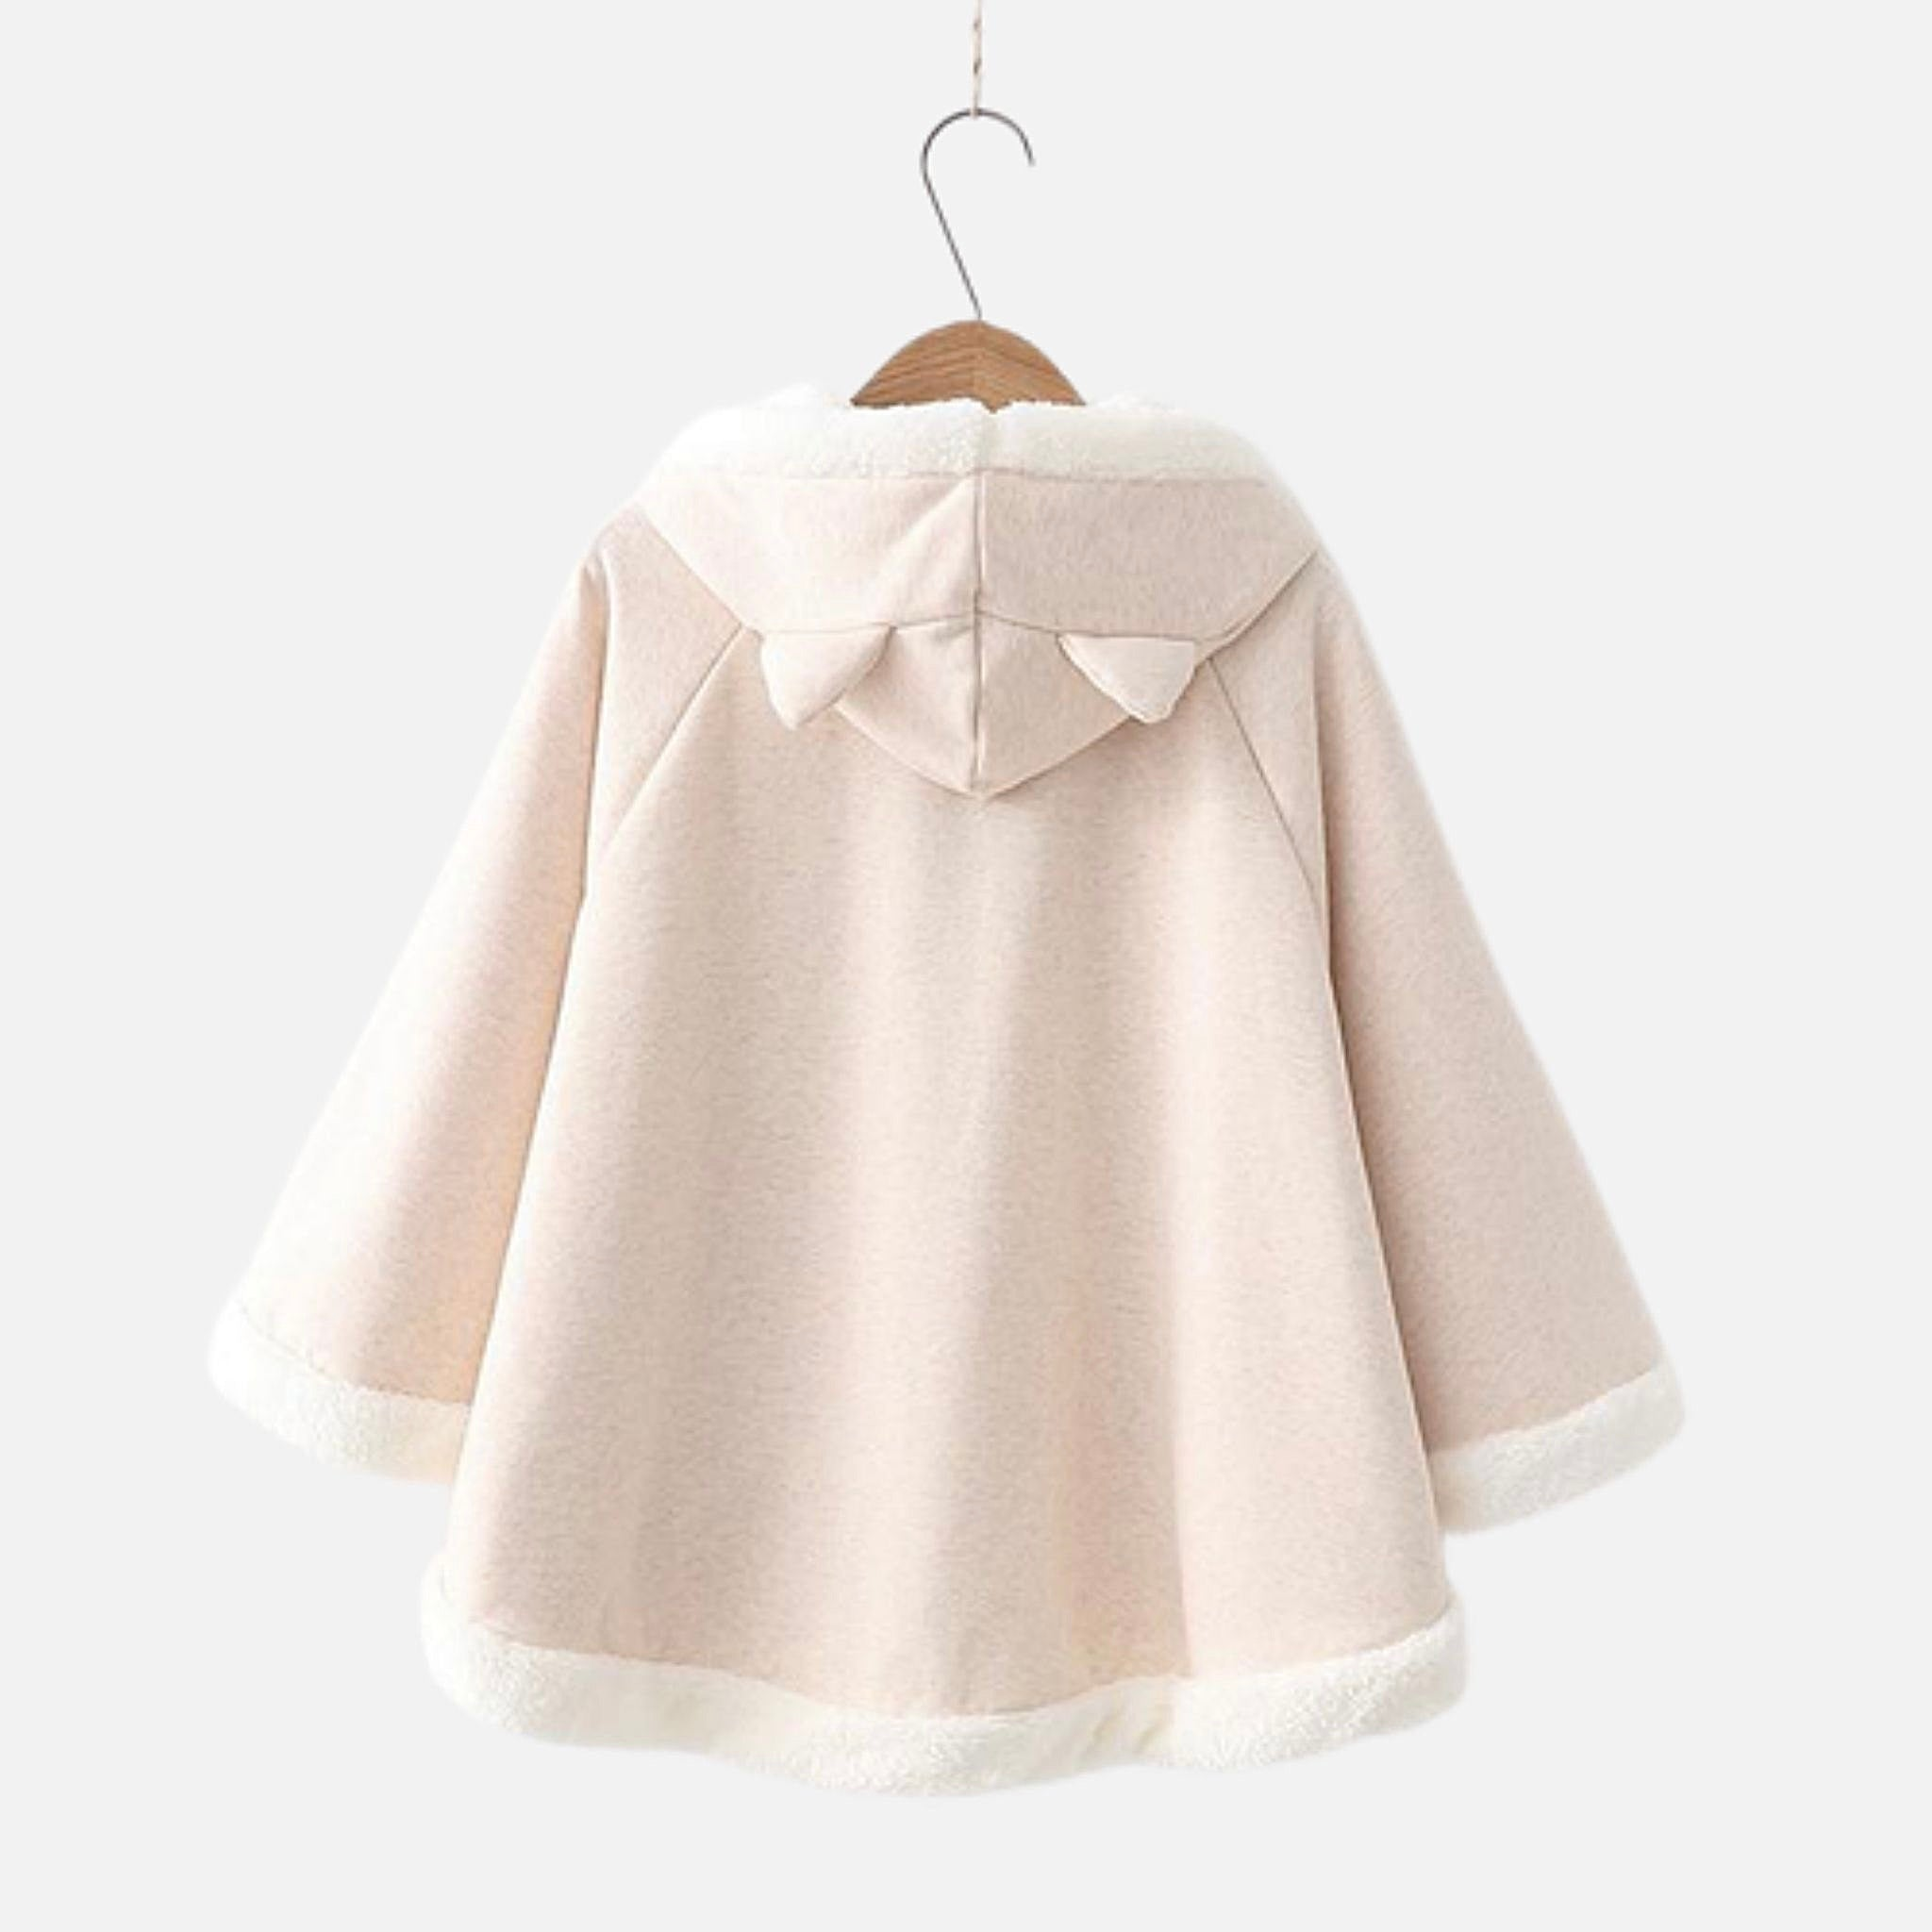 Batwing Fleece Hooded Poncho   Kawaii Ears Japanese Lucky Cat Loose Sleeve Beige Pullover Cape Top Harajuku Hooded Cloak Outwear Back View